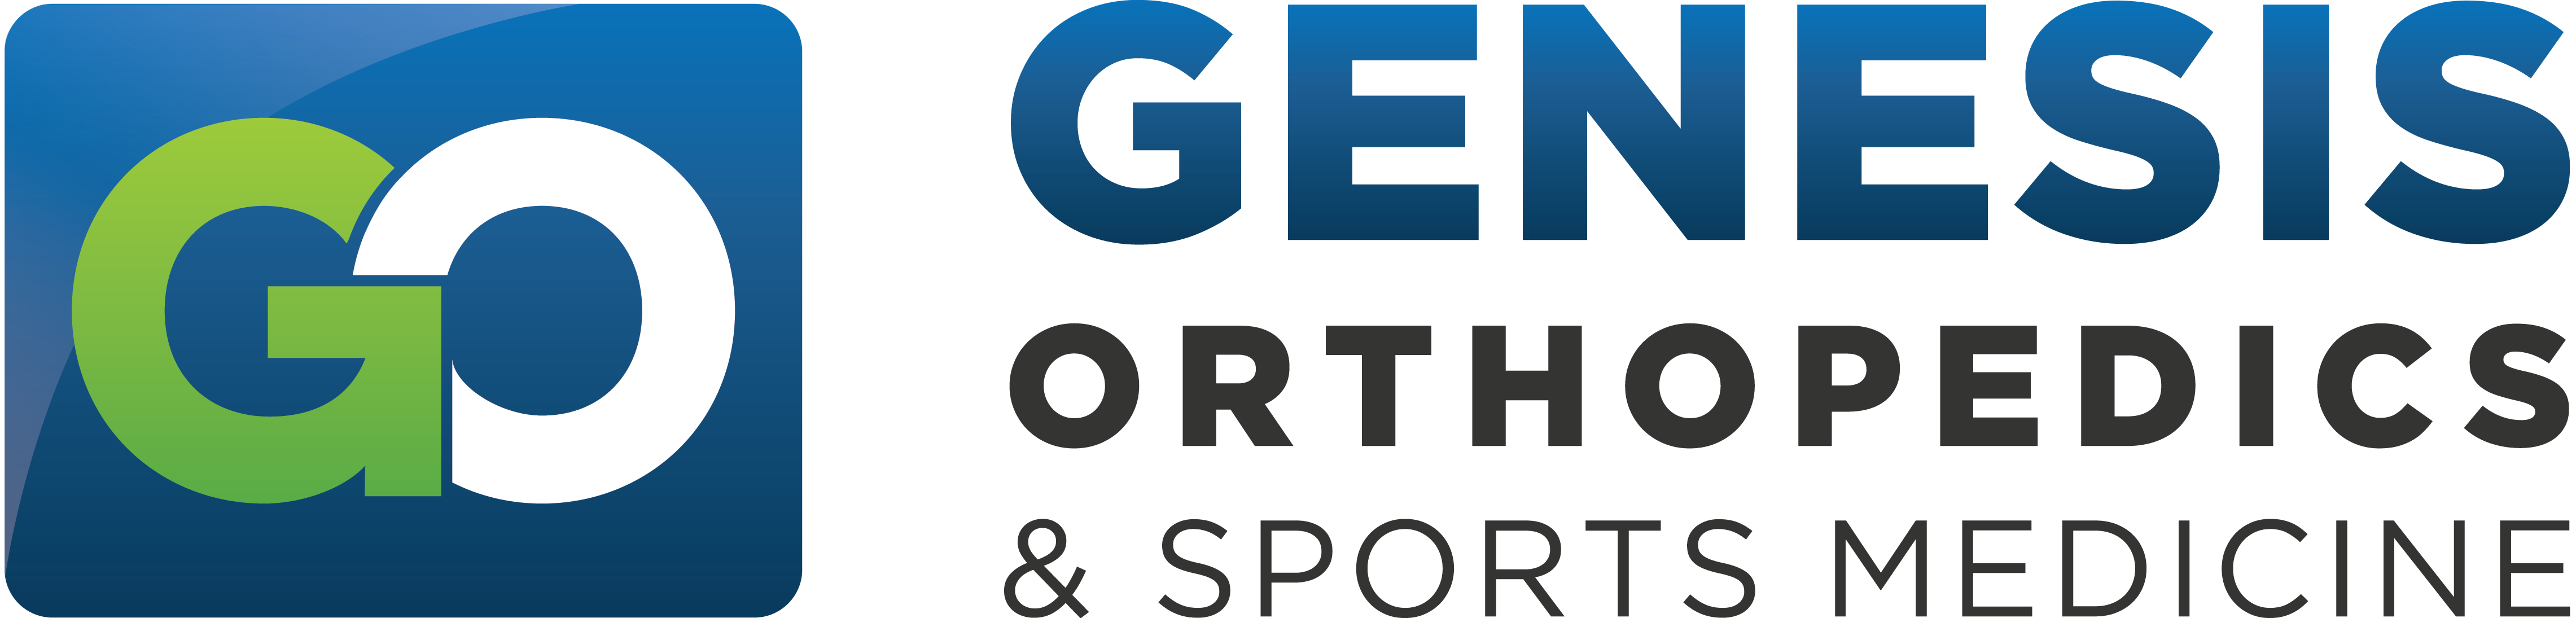 Genesis Orthopedics & Sports Medicine Named to Inc. 5000 Fastest-Growing Privately Held Companies in the U.S.